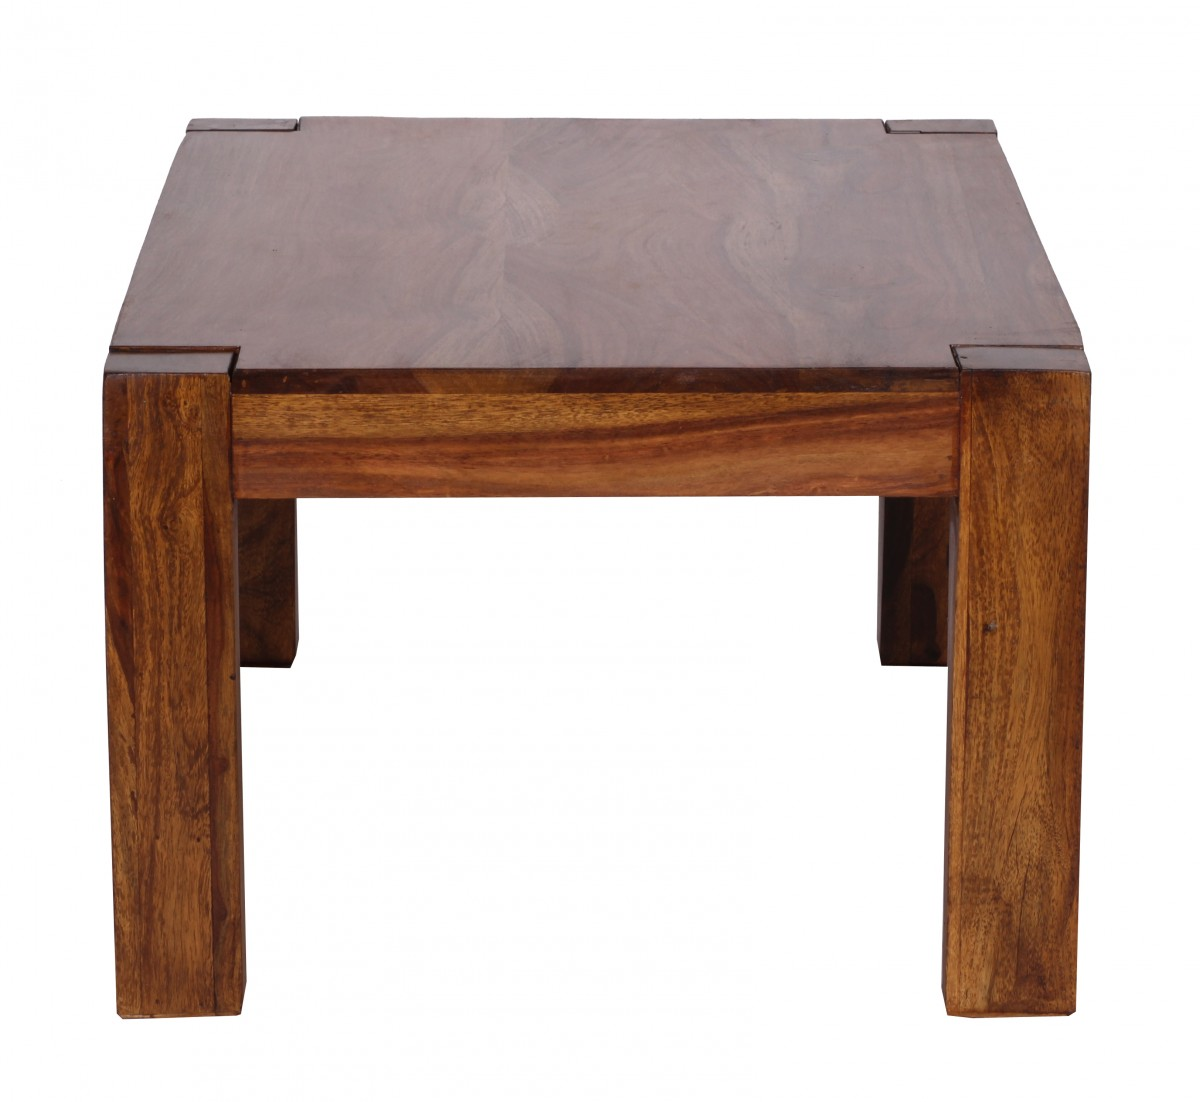 Coffee Side Tables Living Room Furniture: WOHNLING SHEESHAM SOLID WOOD COFFEE SIDE TABLE LIVING ROOM